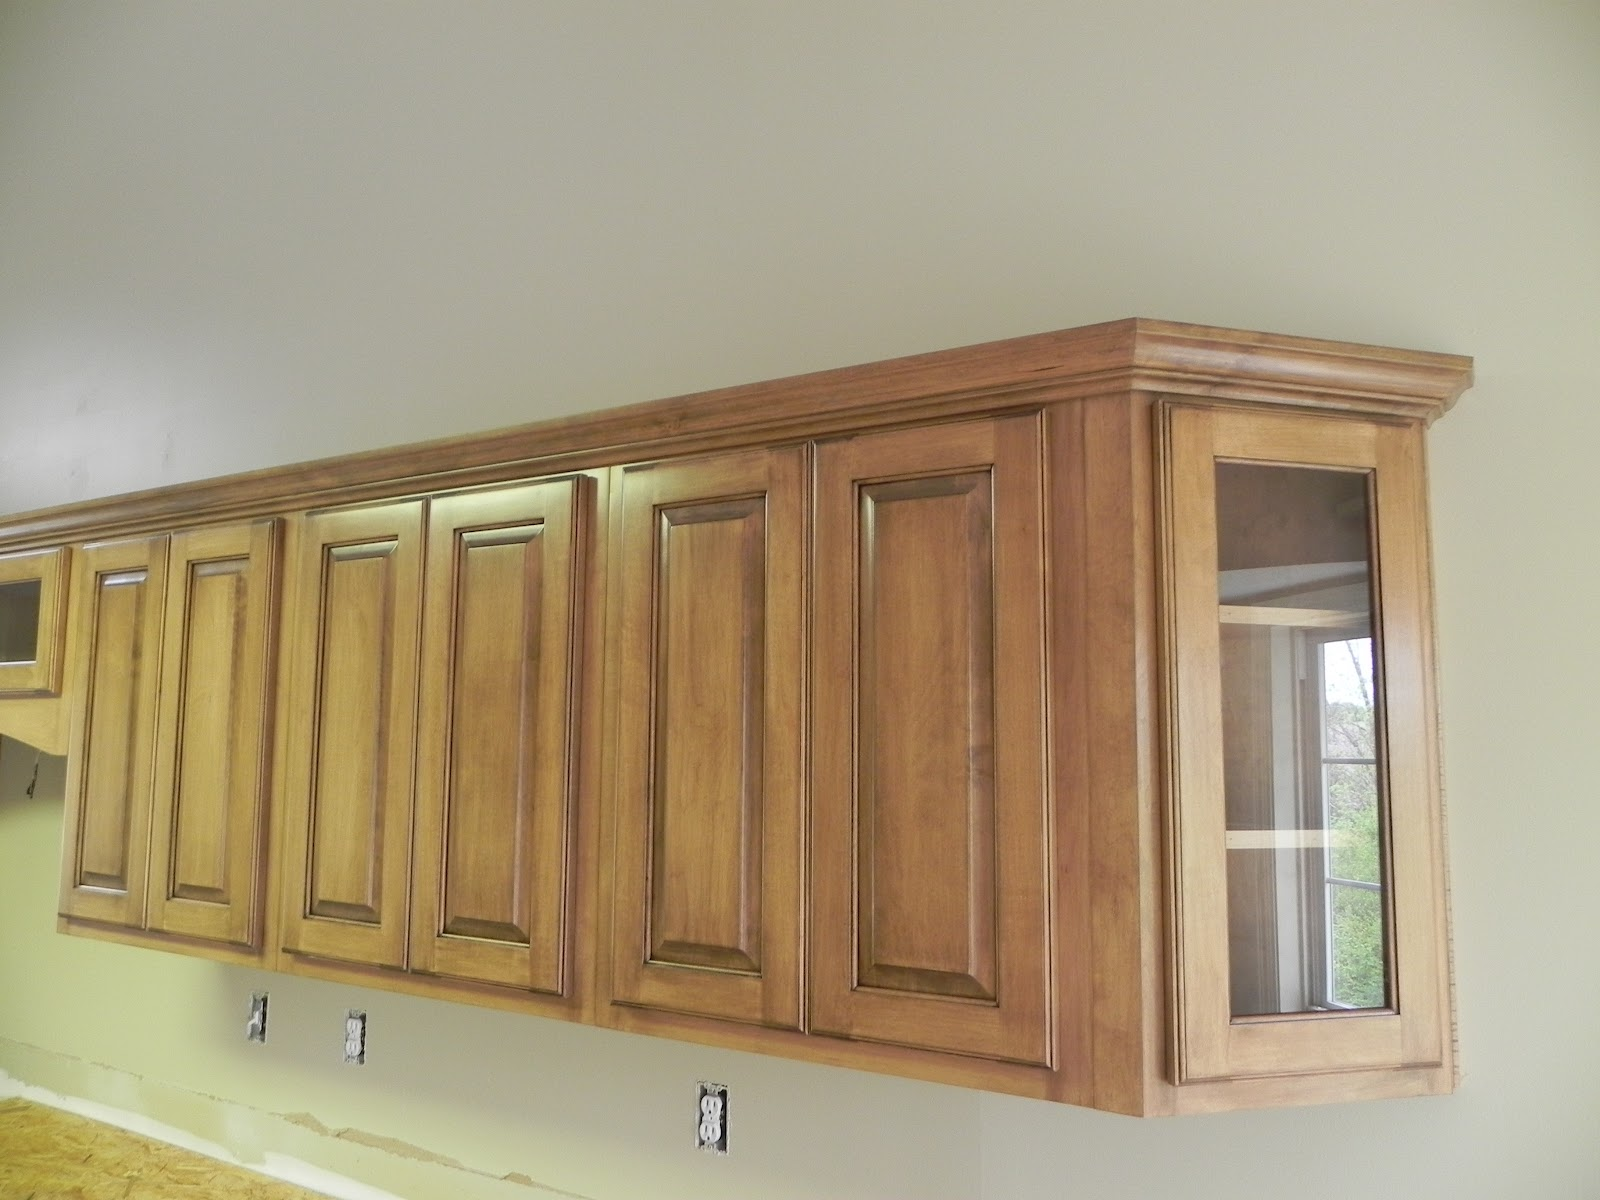 Adkisson 39 s cabinets maple cabinets with antique glaze finish for Maple cabinets